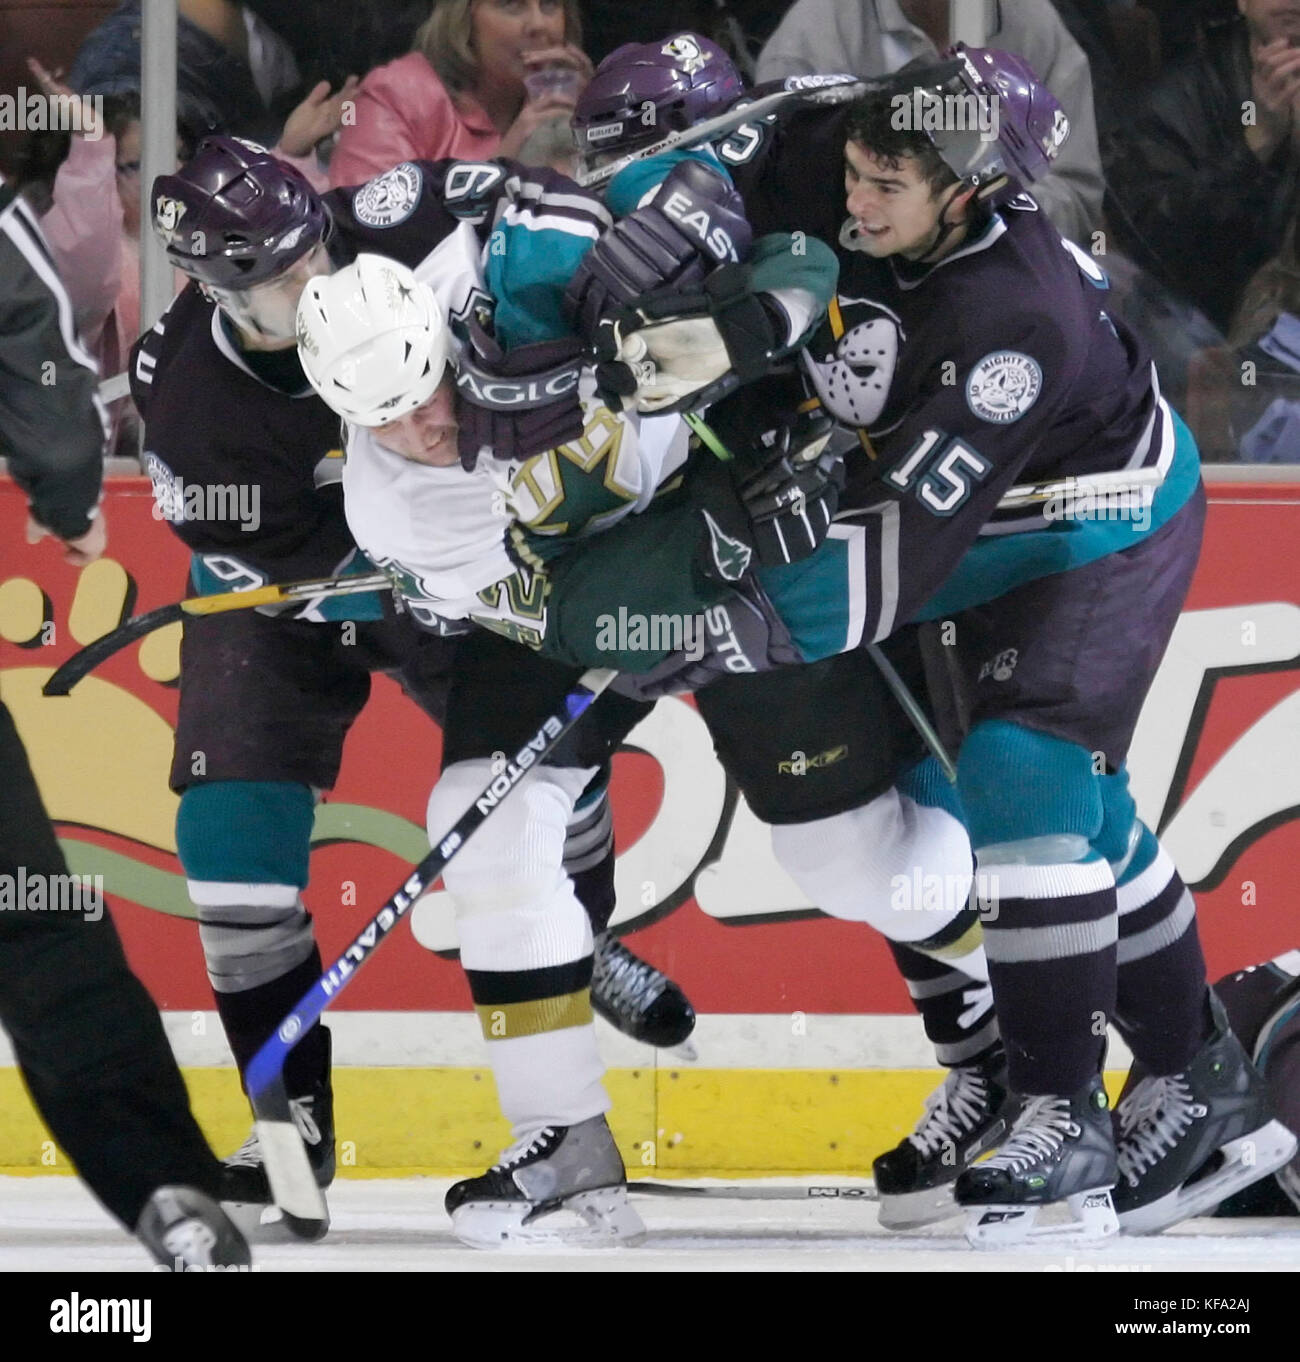 Anaheim Mighty Ducks' Joffrey Lupul, right, and teammate Andy McDonald, left, tackle Dallas Stars' Don Klemm - Stock Image